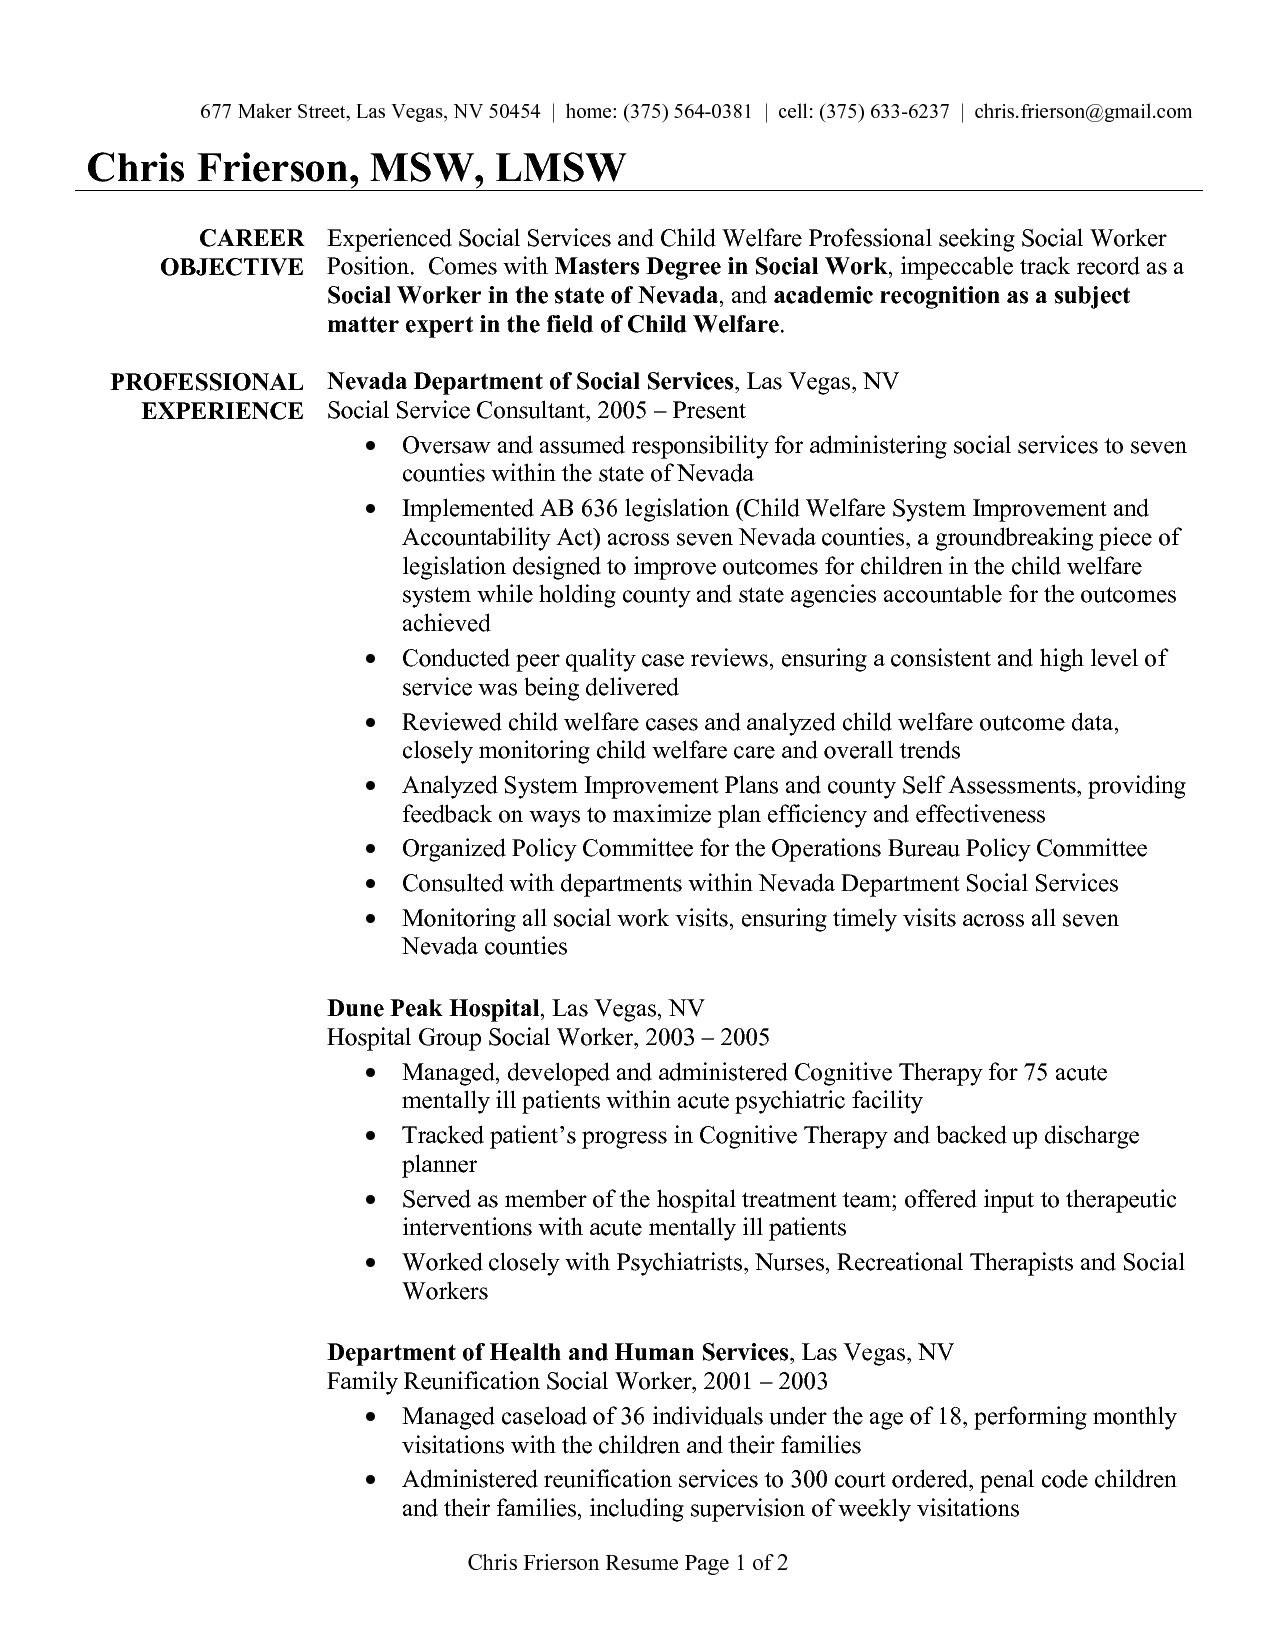 Free Resume Update Services Social Work Resume Examples Social Worker Resume Sample